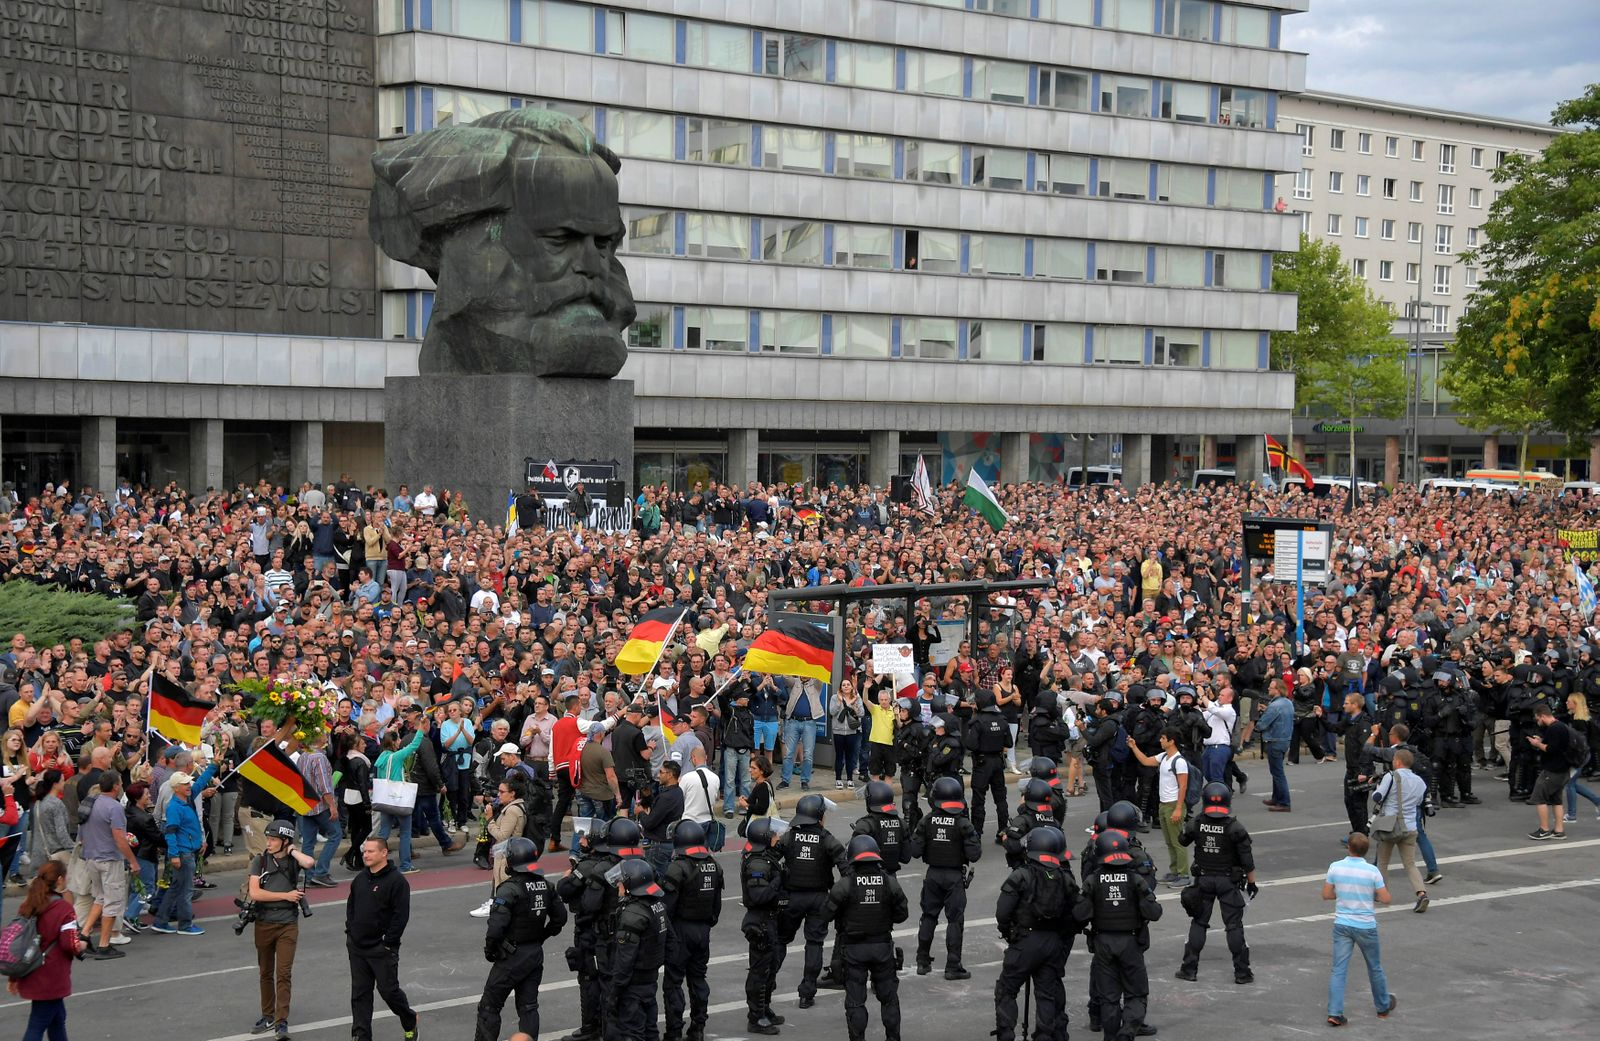 Right-wing supporters protest against foreigners after a German man was stabbed last weekend in Chemnitz